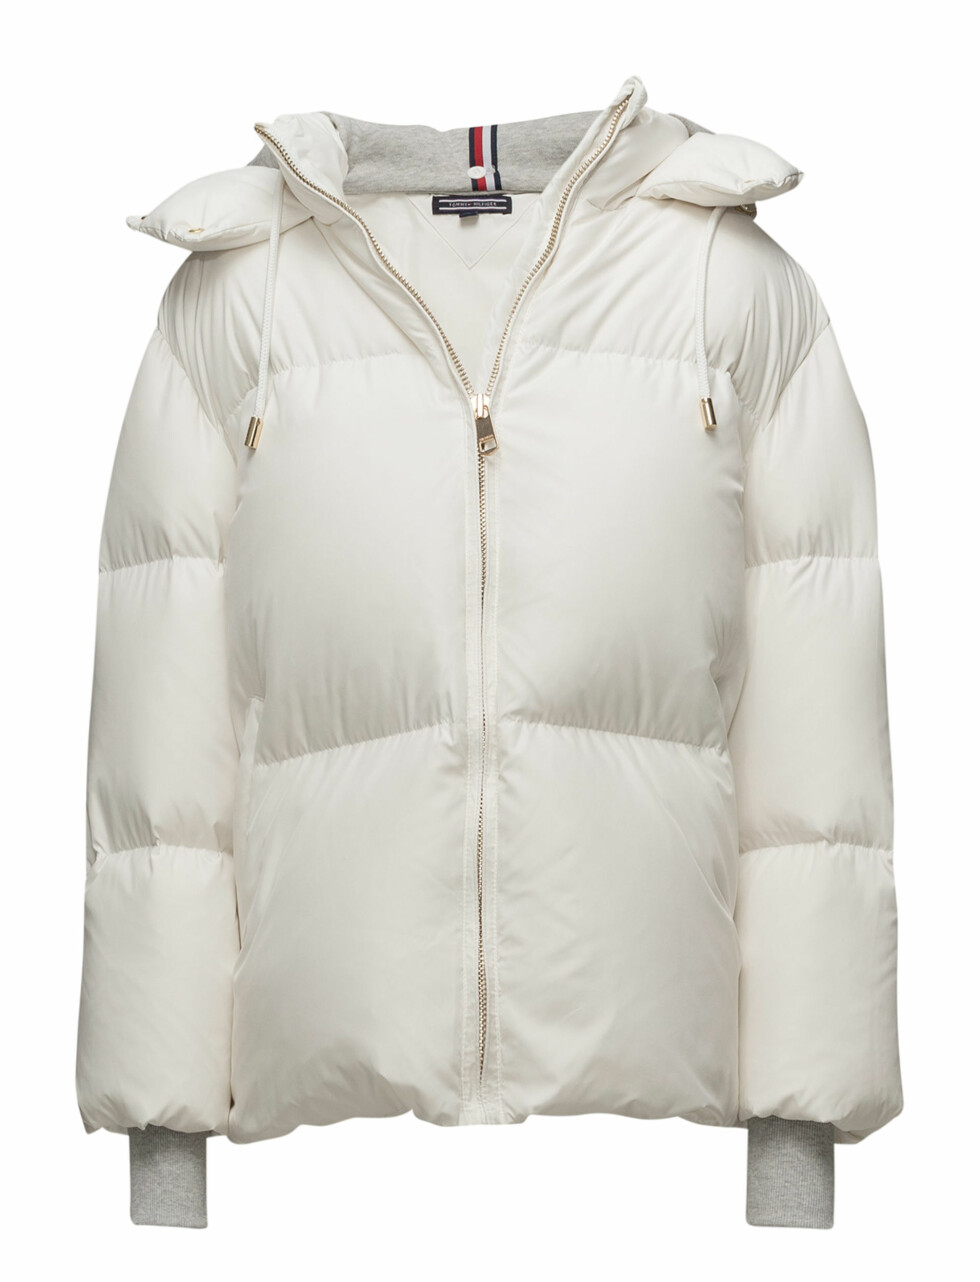 Boblejakke fra Tommy Hilfiger |3499,-| https://www.boozt.com/no/no/tommy-hilfiger/ivan-super-down-coat_16758277/16758281?position=2&relNavId=67434&group=related_categories